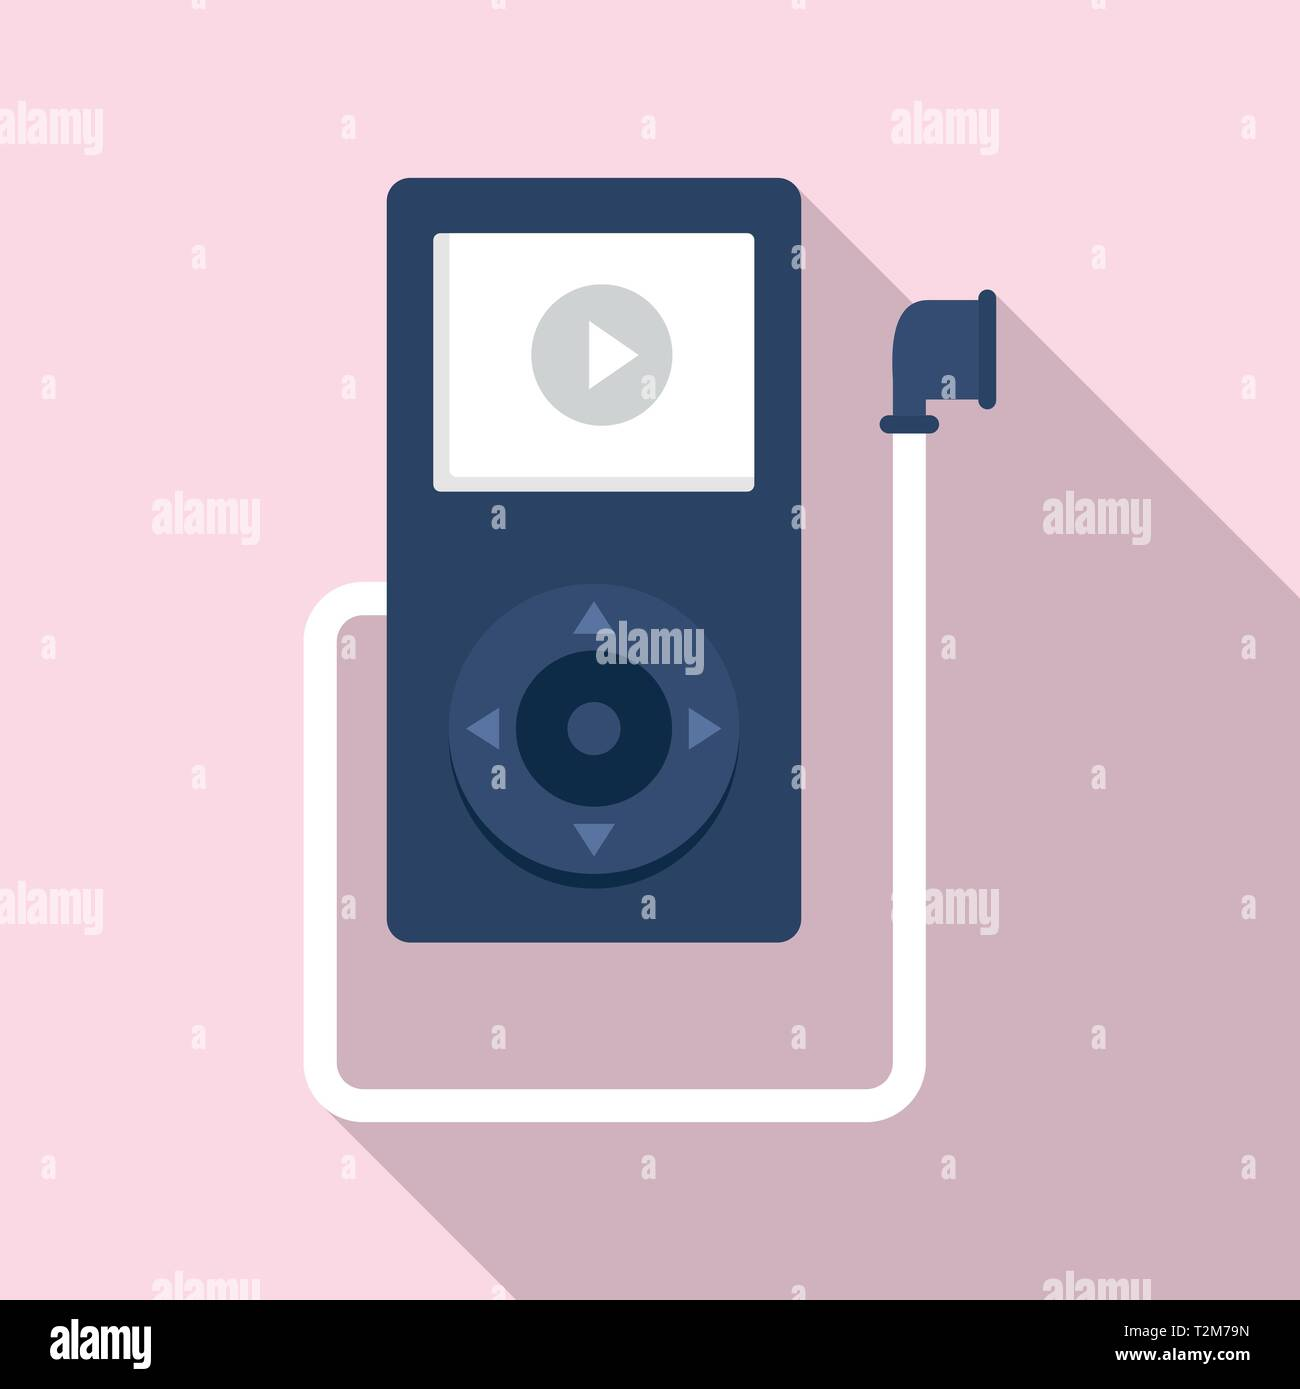 Music player learning icon  Flat illustration of music player